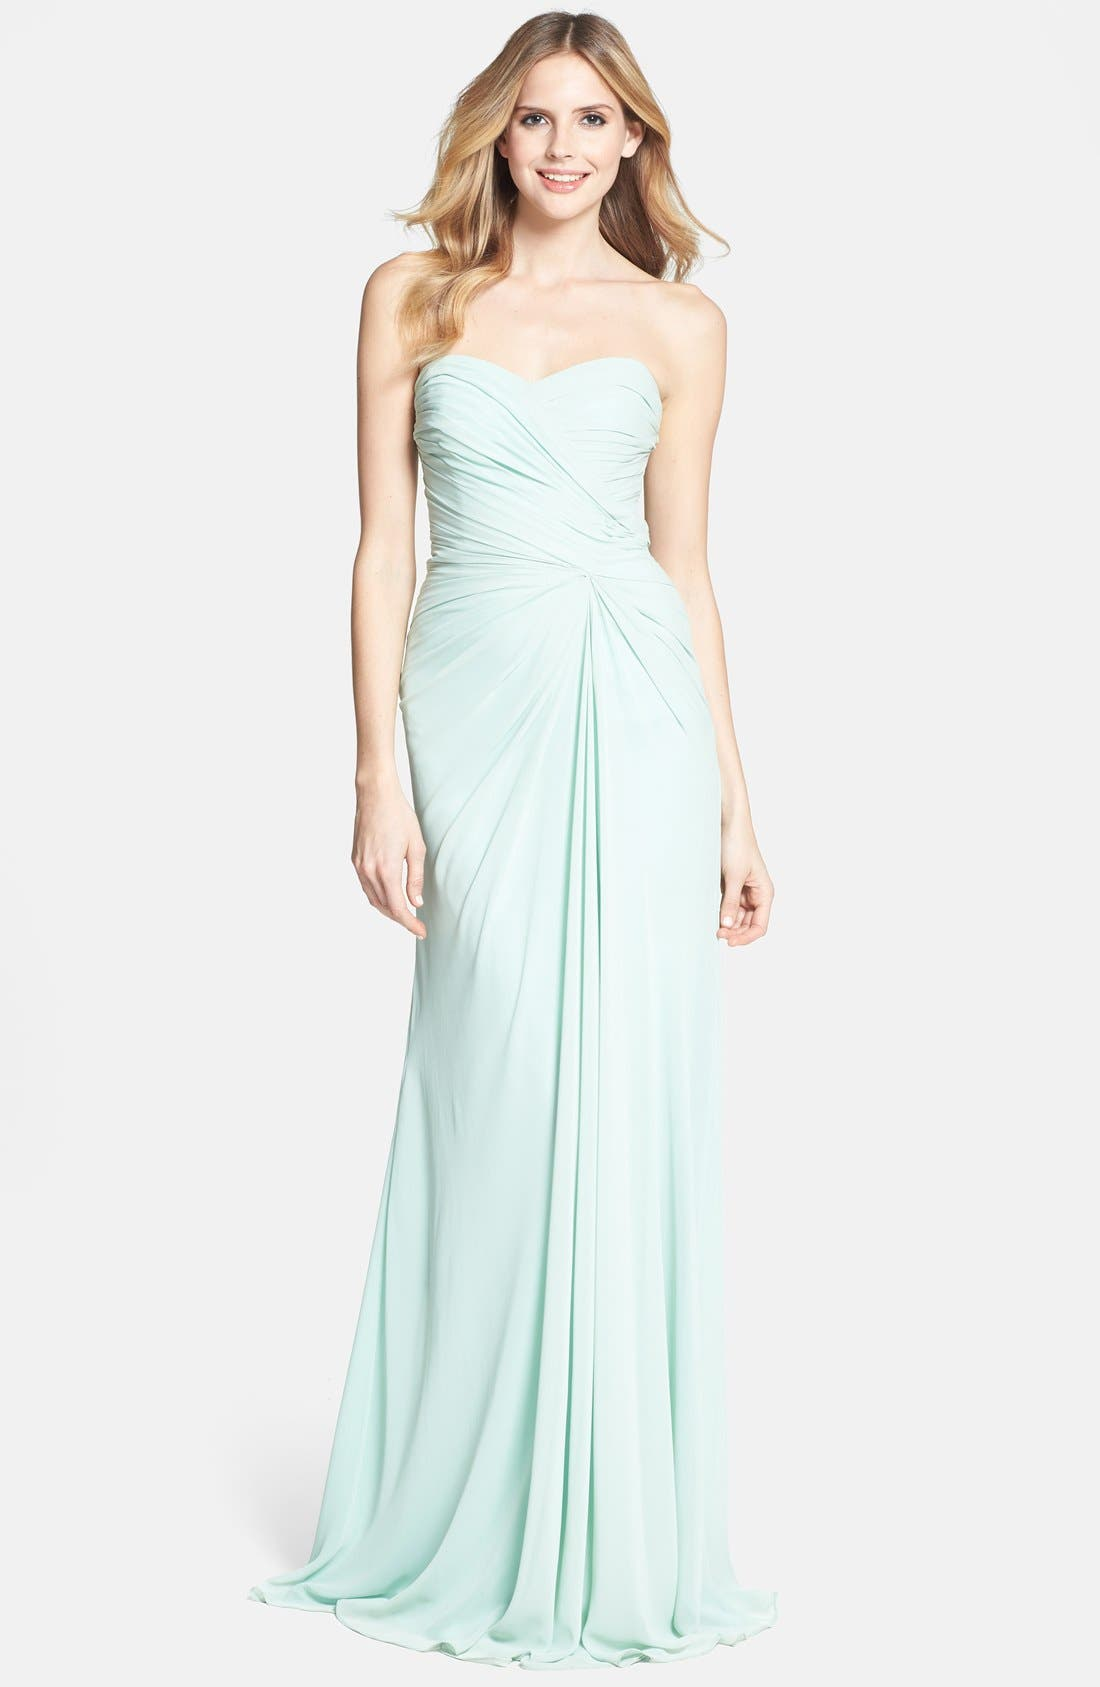 Main Image - Monique Lhuillier Bridesmaids Draped Chiffon Gown